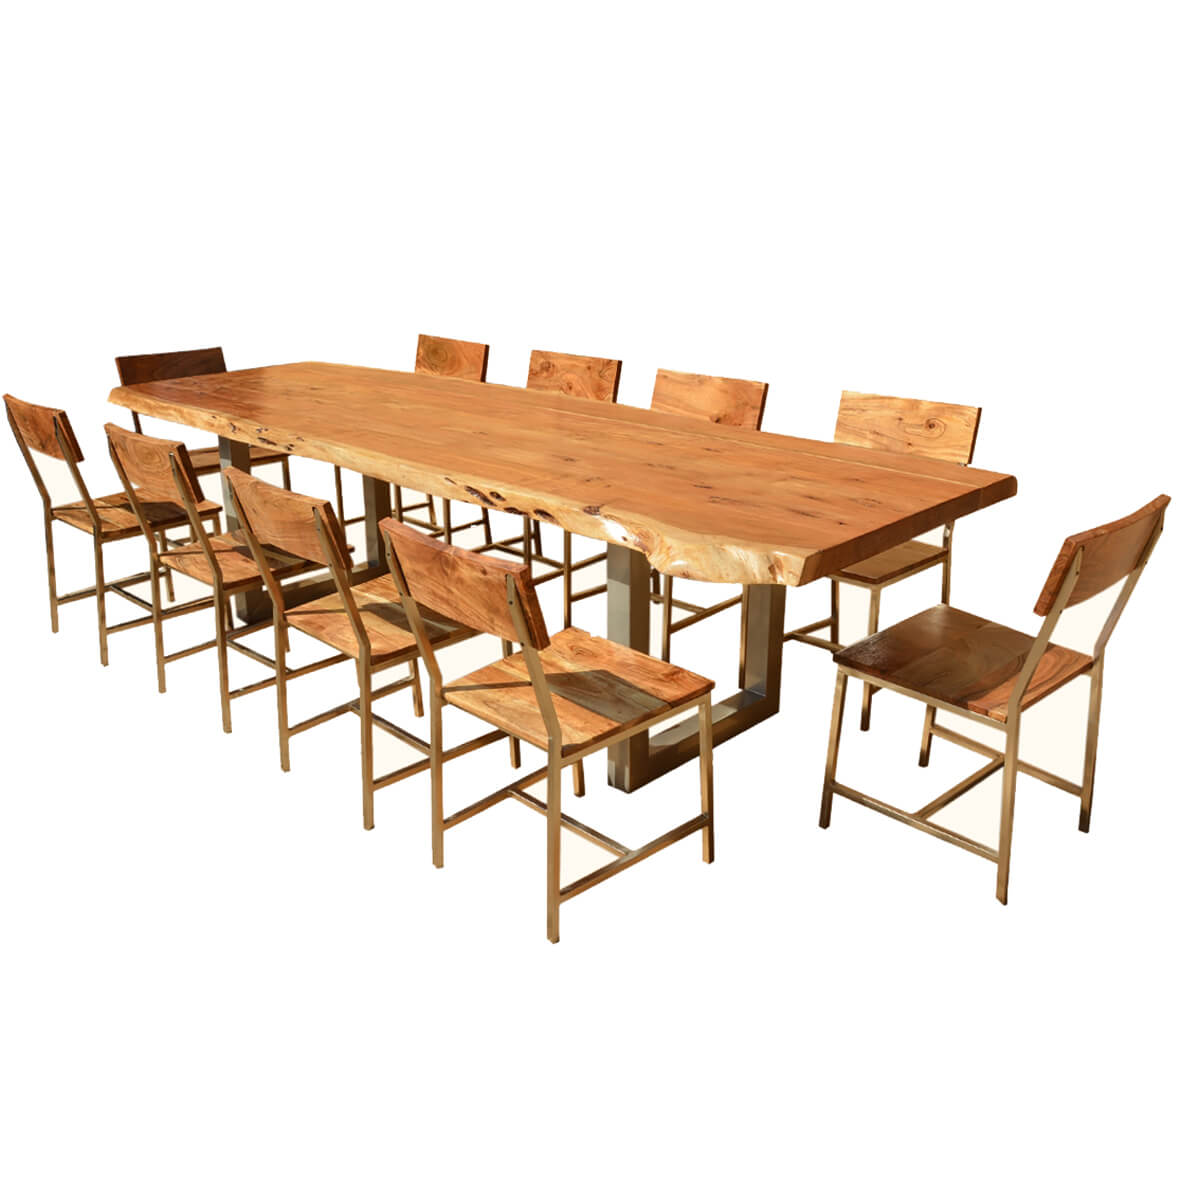 Live Edge Acacia Wood Iron 117 Modern Dining Table 10 Chairs